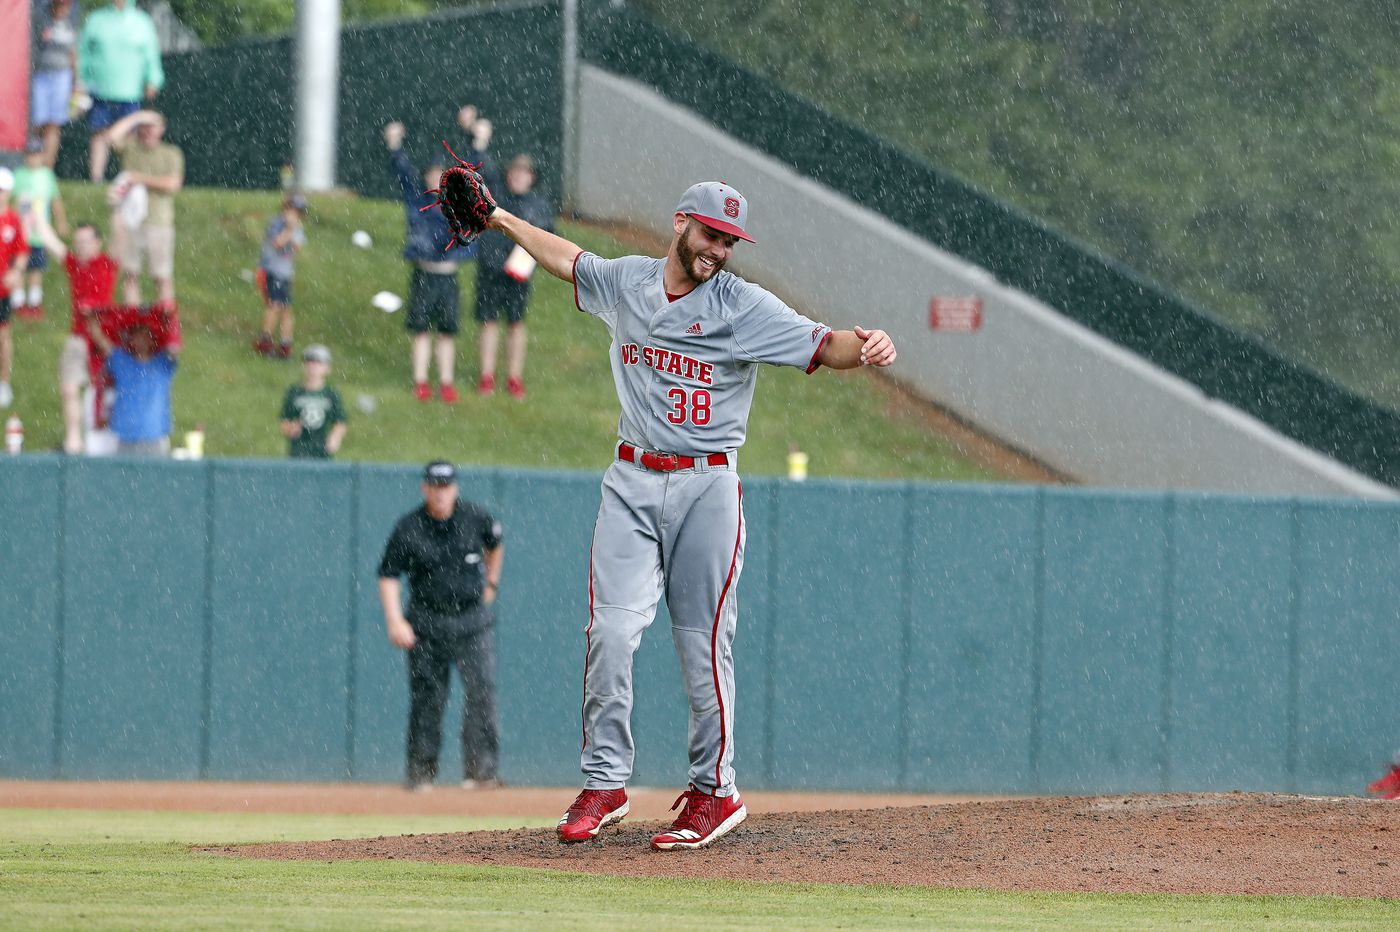 Former Coatesville standout Brian Brown ready for the next level with Red Sox